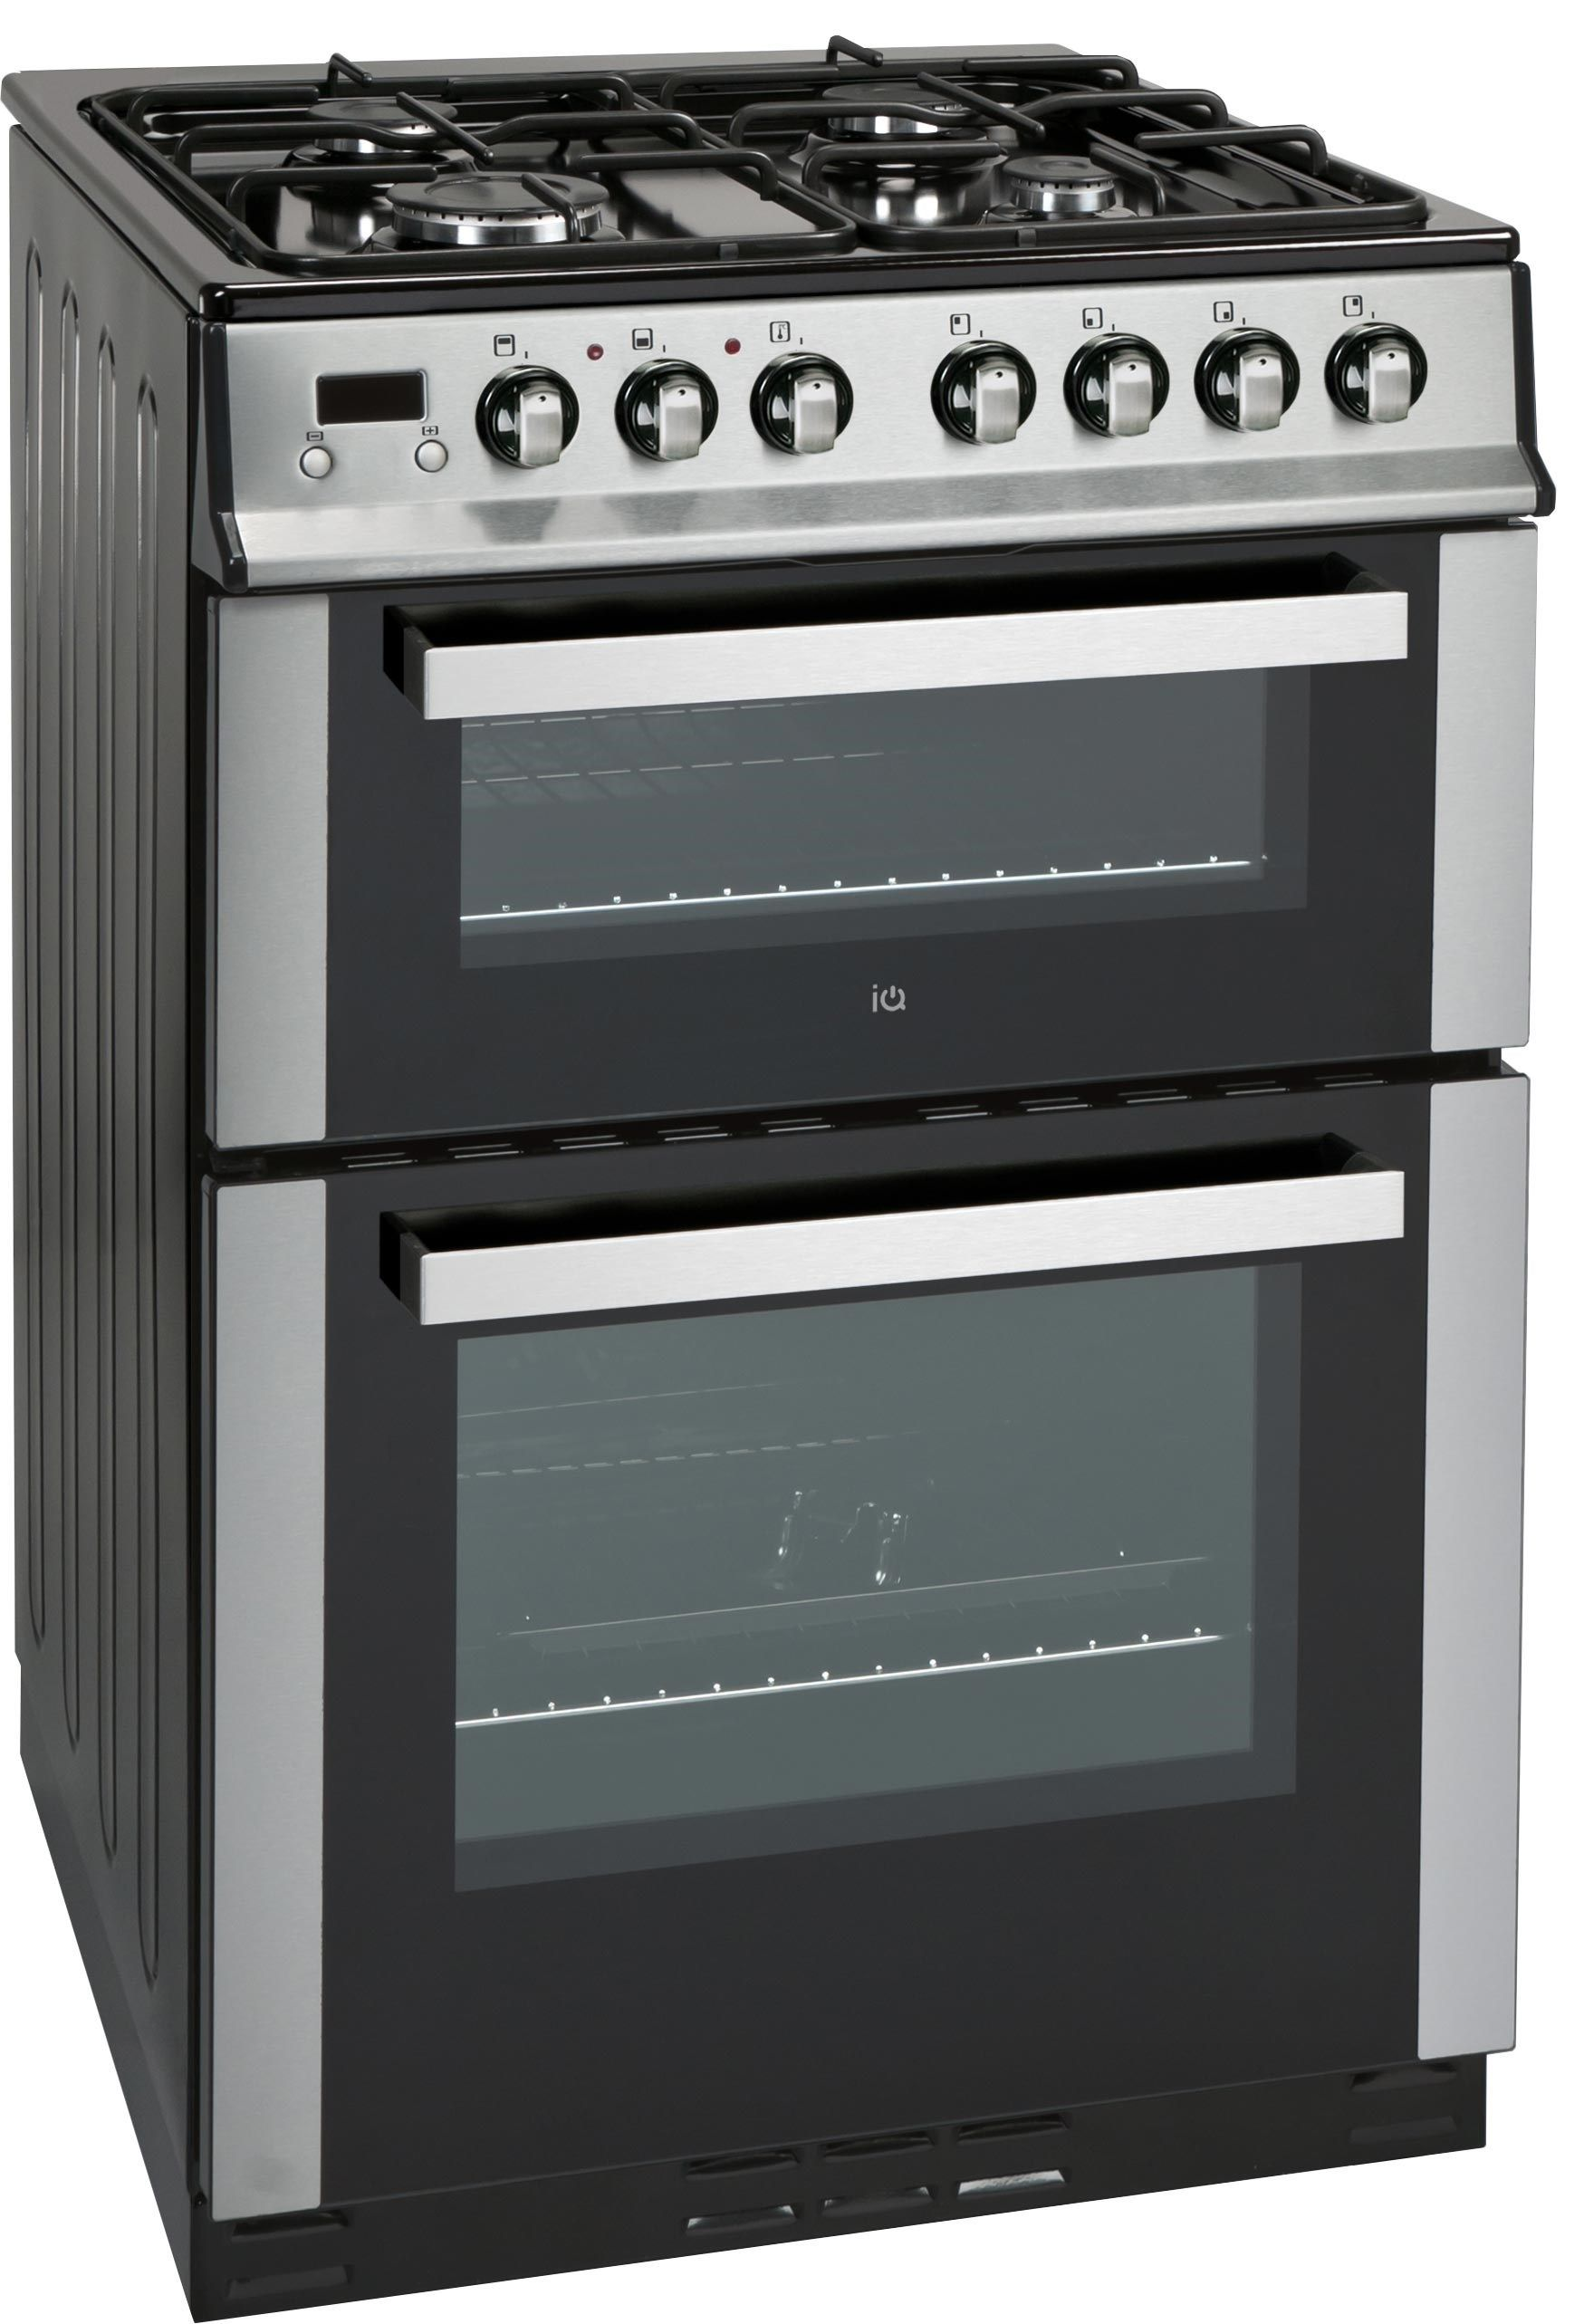 Iqdfc2w60 Stainless Steel Cooker 329 Dual Fuel Cooker Stainless Steel Oven Oven